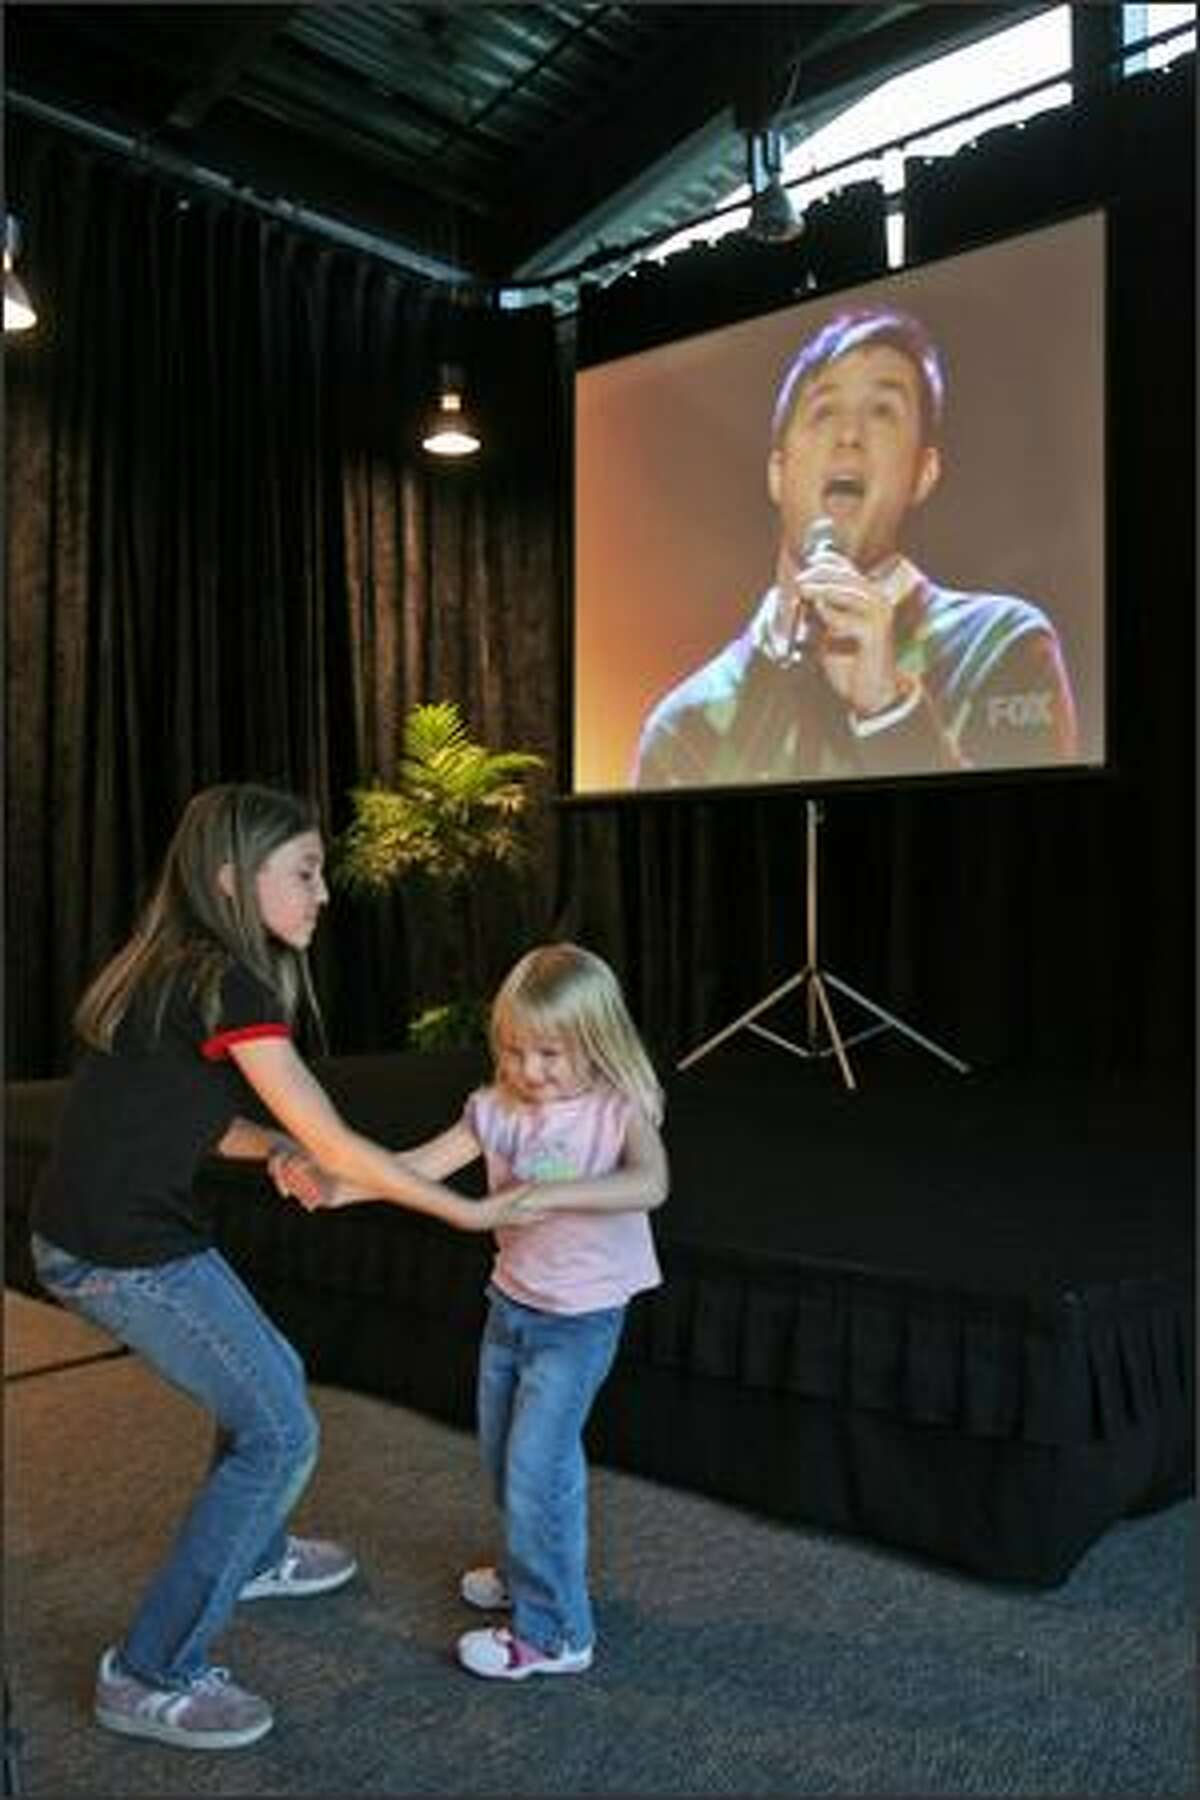 Hannah Kaspar, 9, dances with Ryley Pirak, 3, as Blake Lewis perfoms on American Idol. Supporters of American Idol contestant Blake Lewis gathered at the University of Washington, Bothell, Events Center, near Seattle, Wash., Tuesday May 22, 2007, to watch the final performances via projection television.